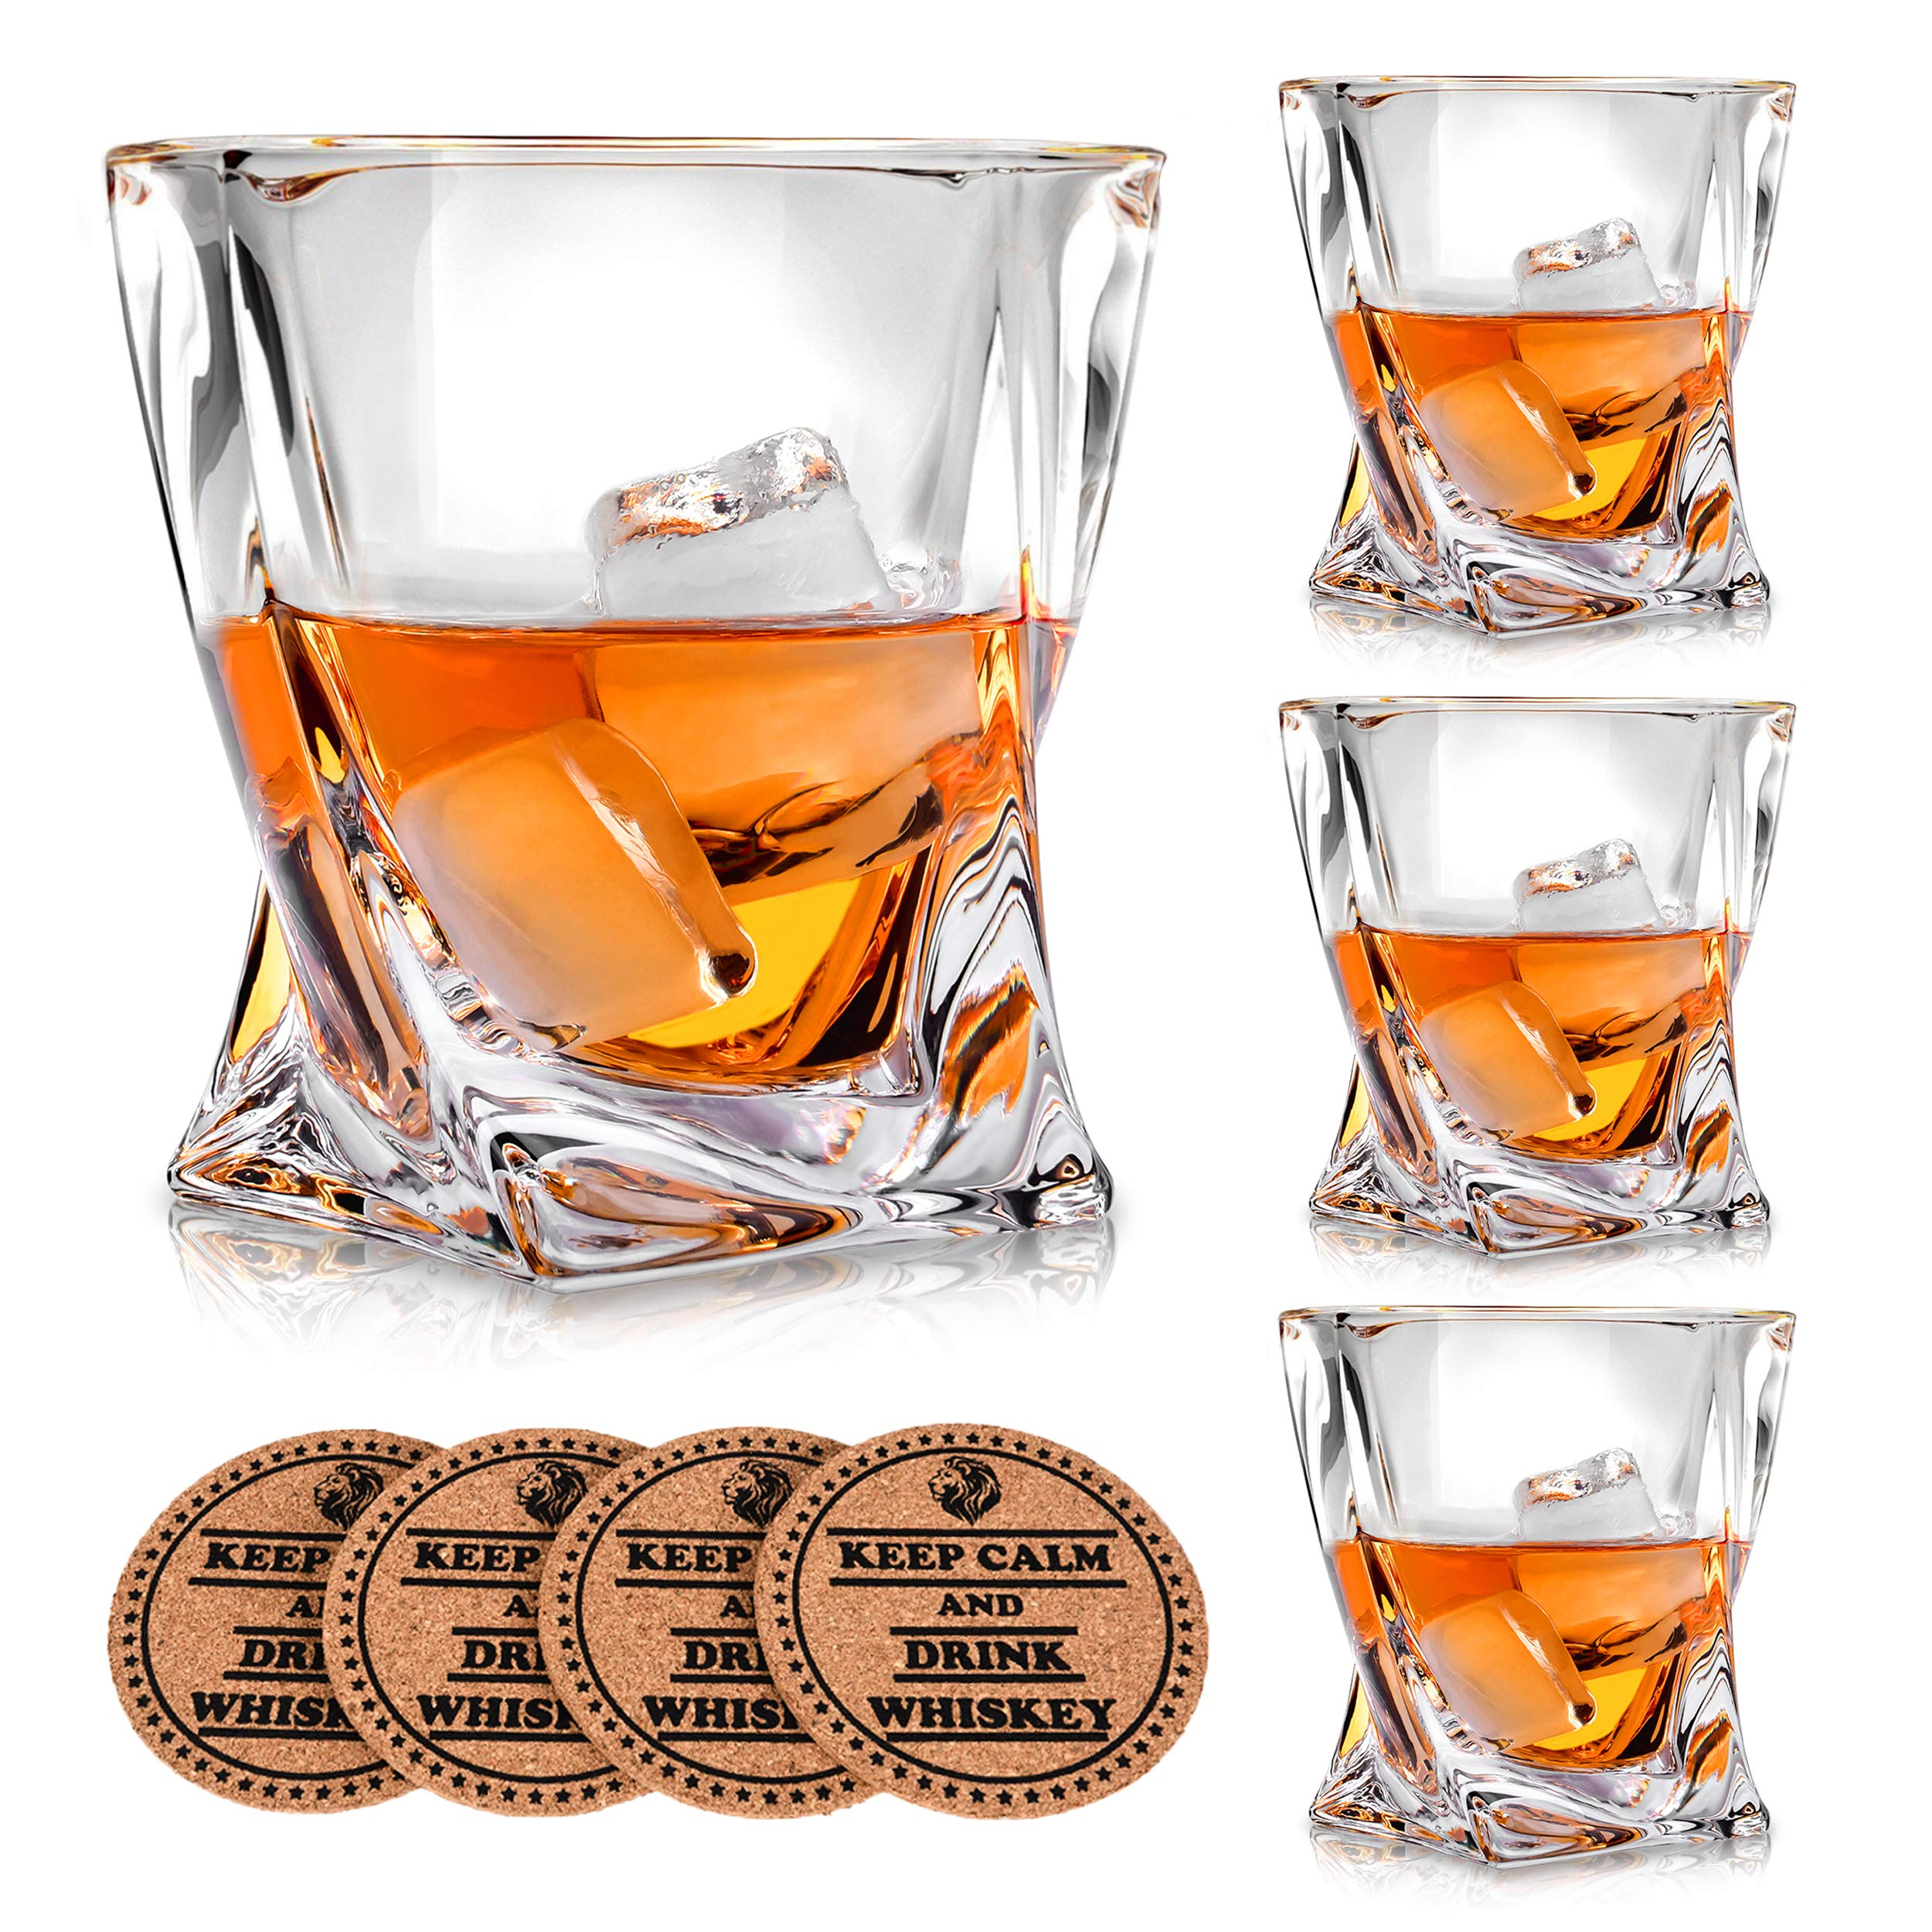 VACI GLASS Crystal Whiskey Glasses - Set of 4 - with 4 Drink Coasters, Crystal Scotch Glass, Malt or Bourbon, Glassware Set